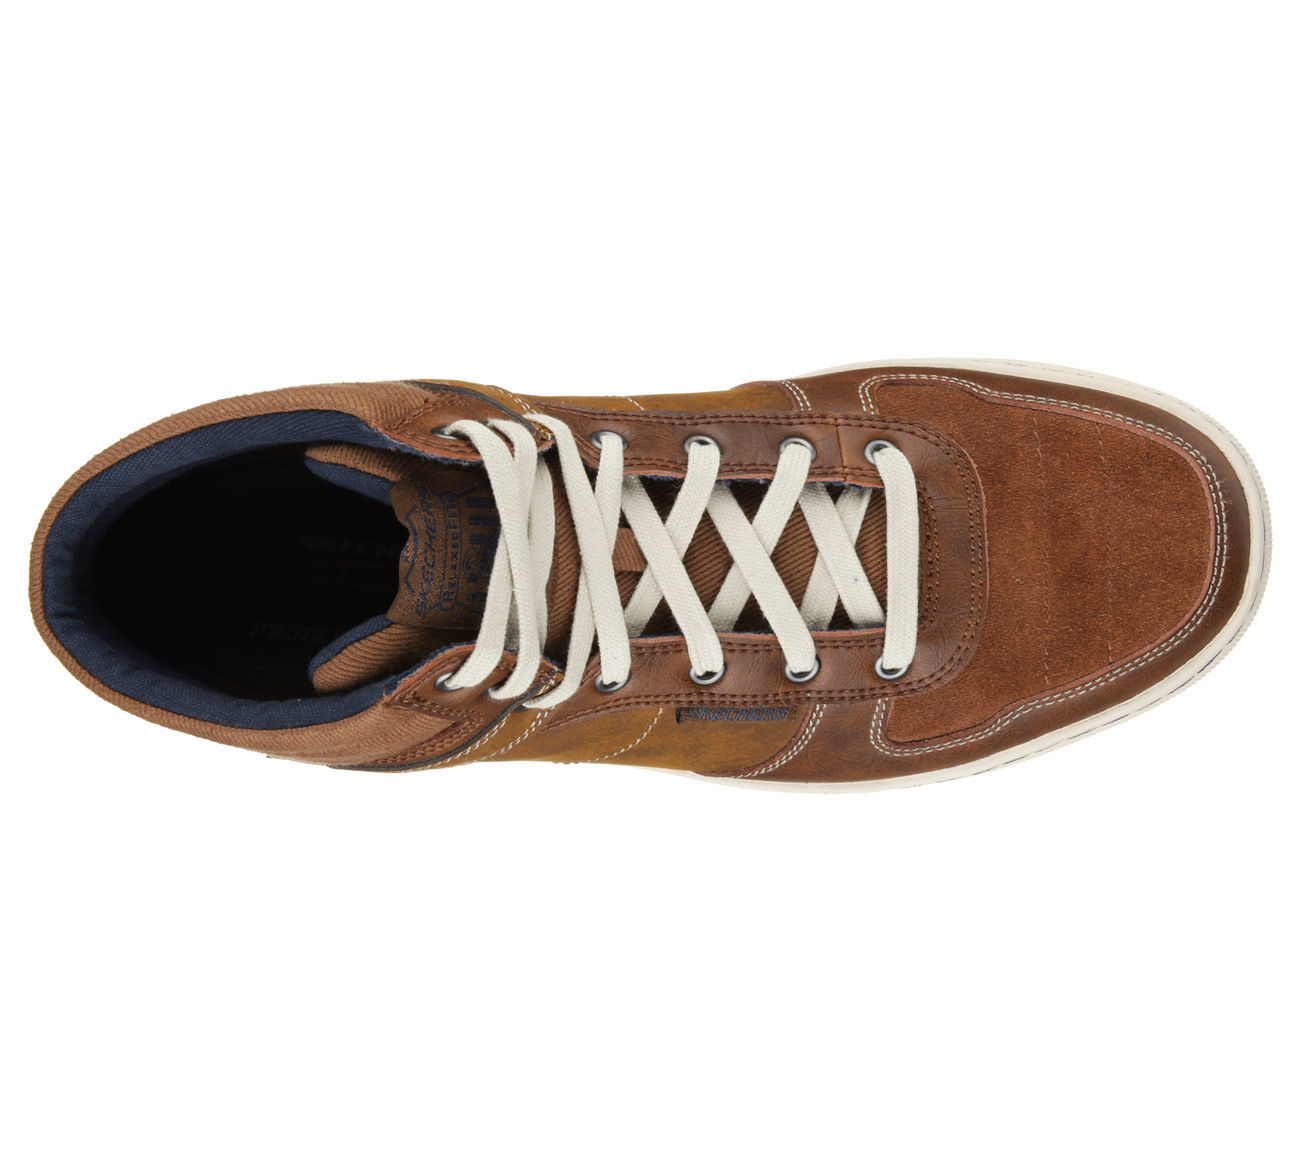 Men's SKECHERS Relaxed Fit: Elvino - Staley Casual Shoe, 64792 LUG Sizes 8-14